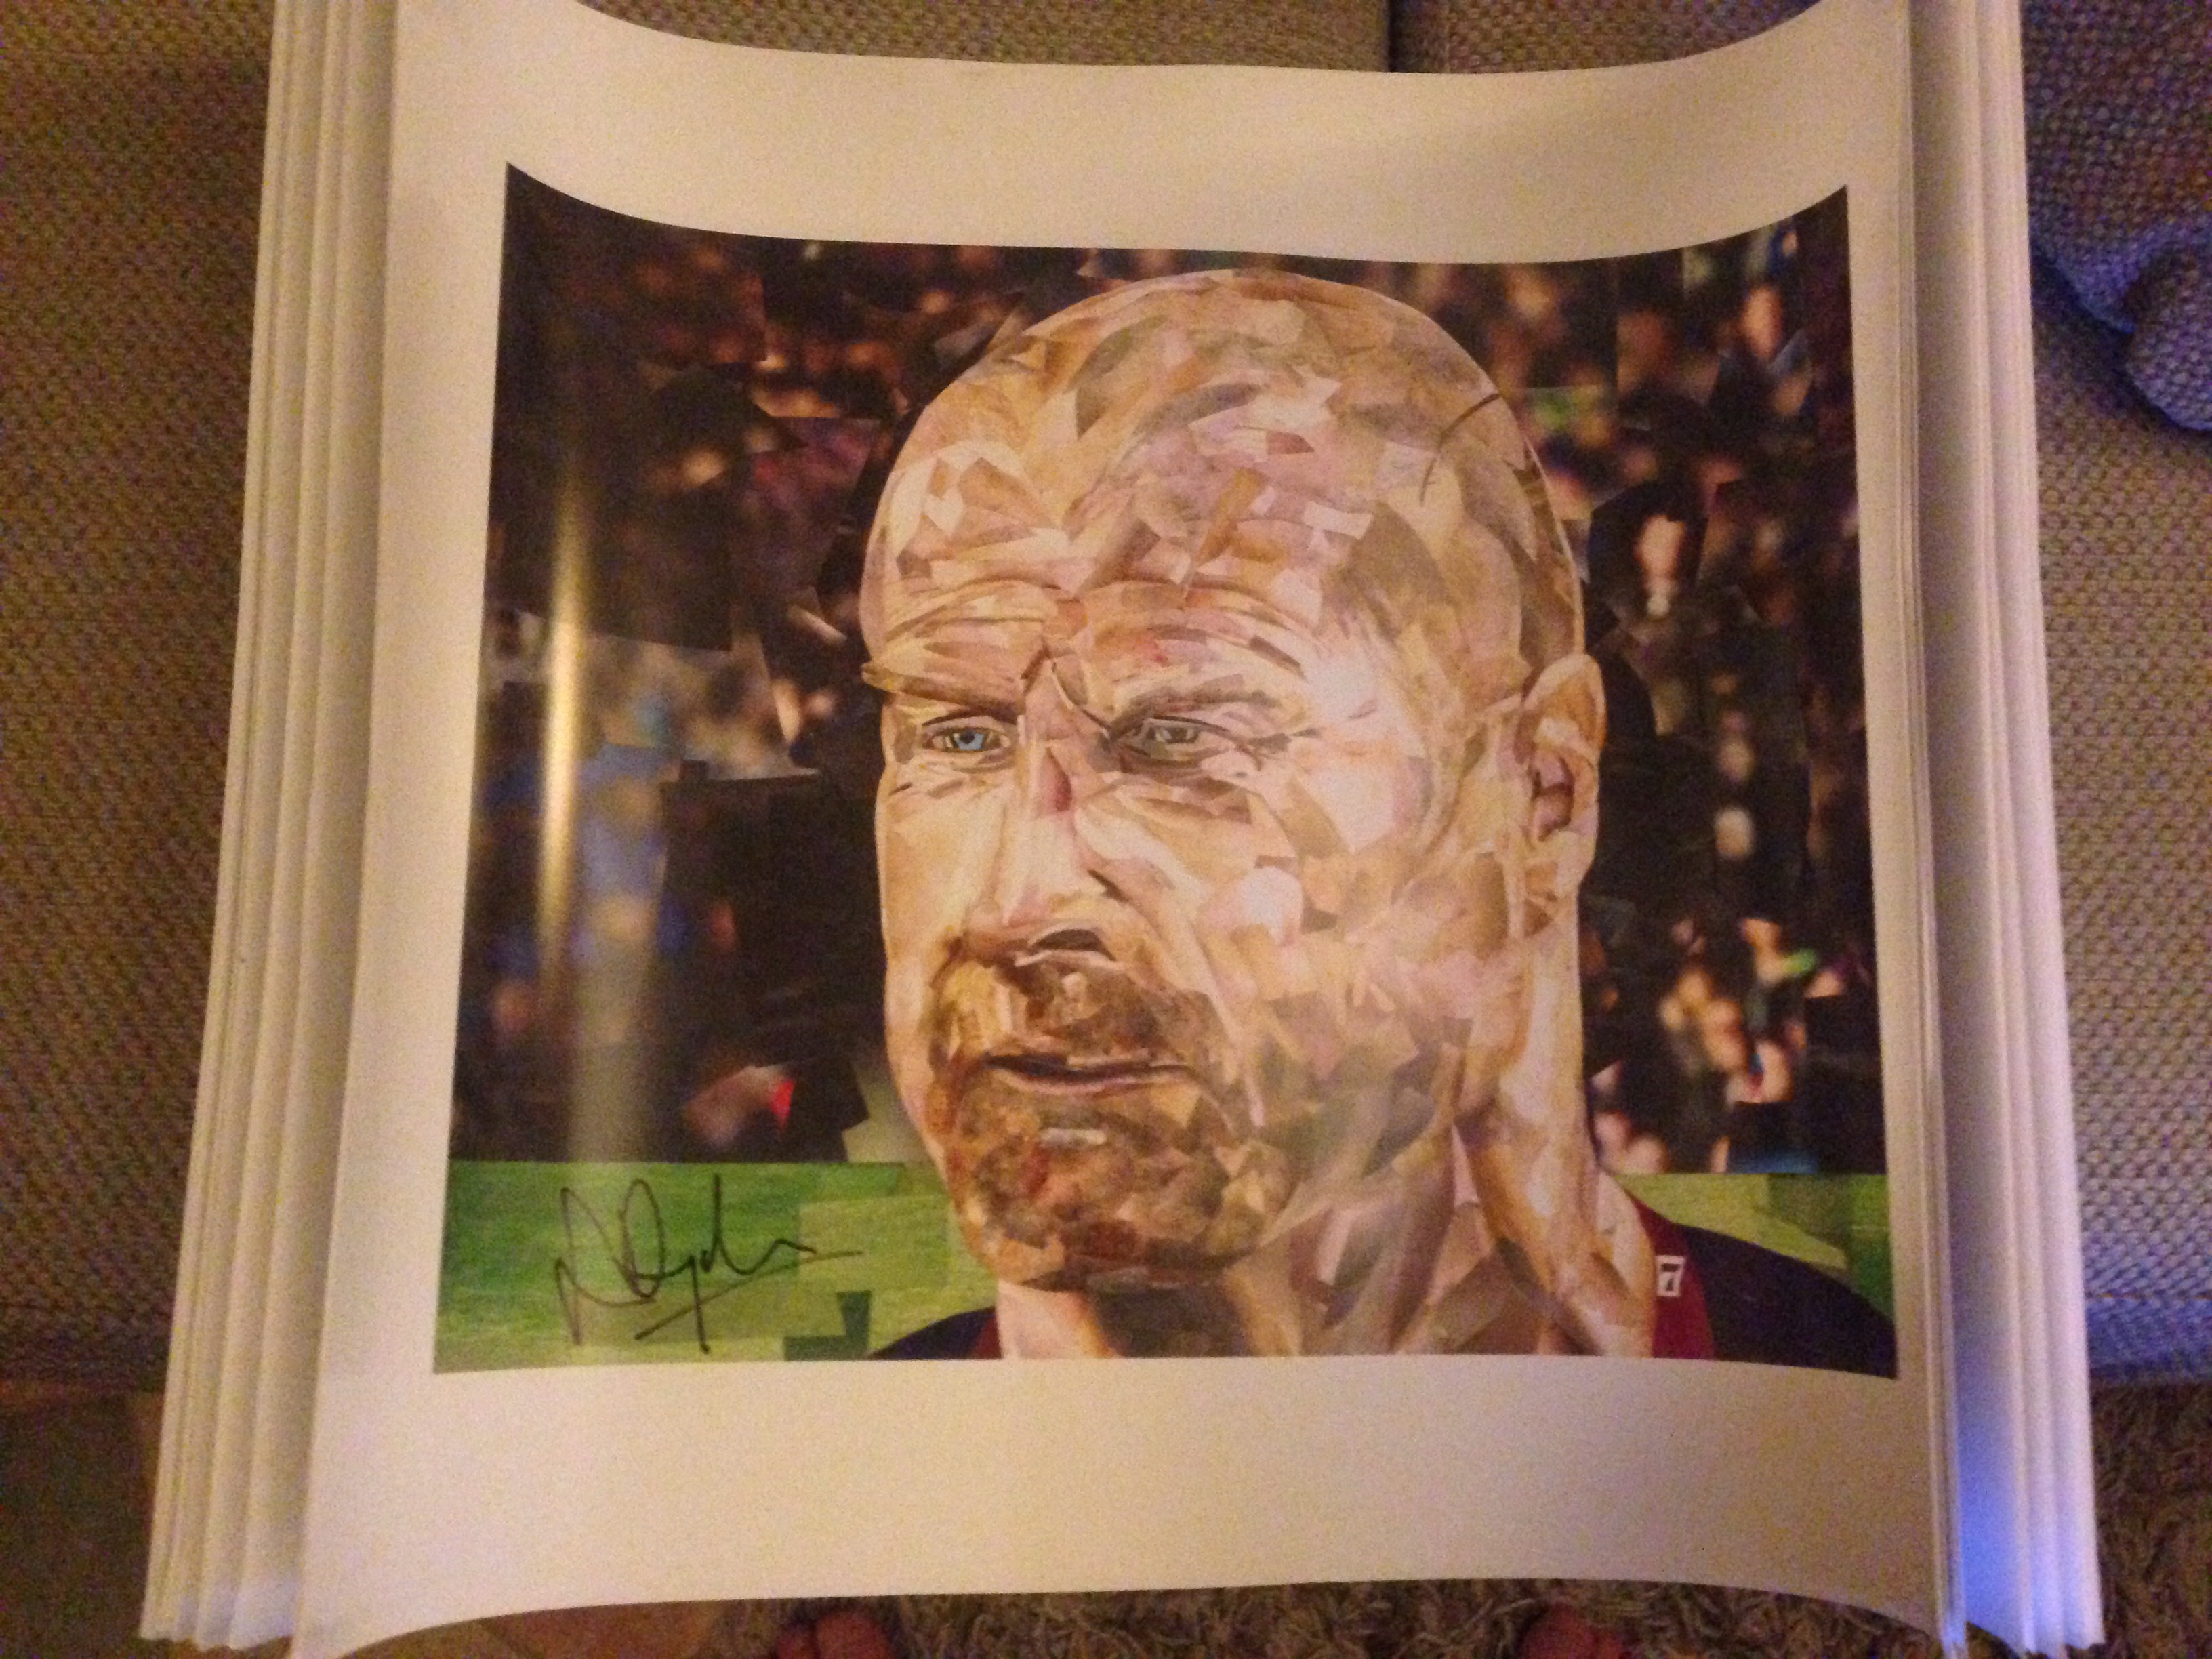 Art: Buy a one-off Sean Dyche portrait and put some Claret in your Christmas